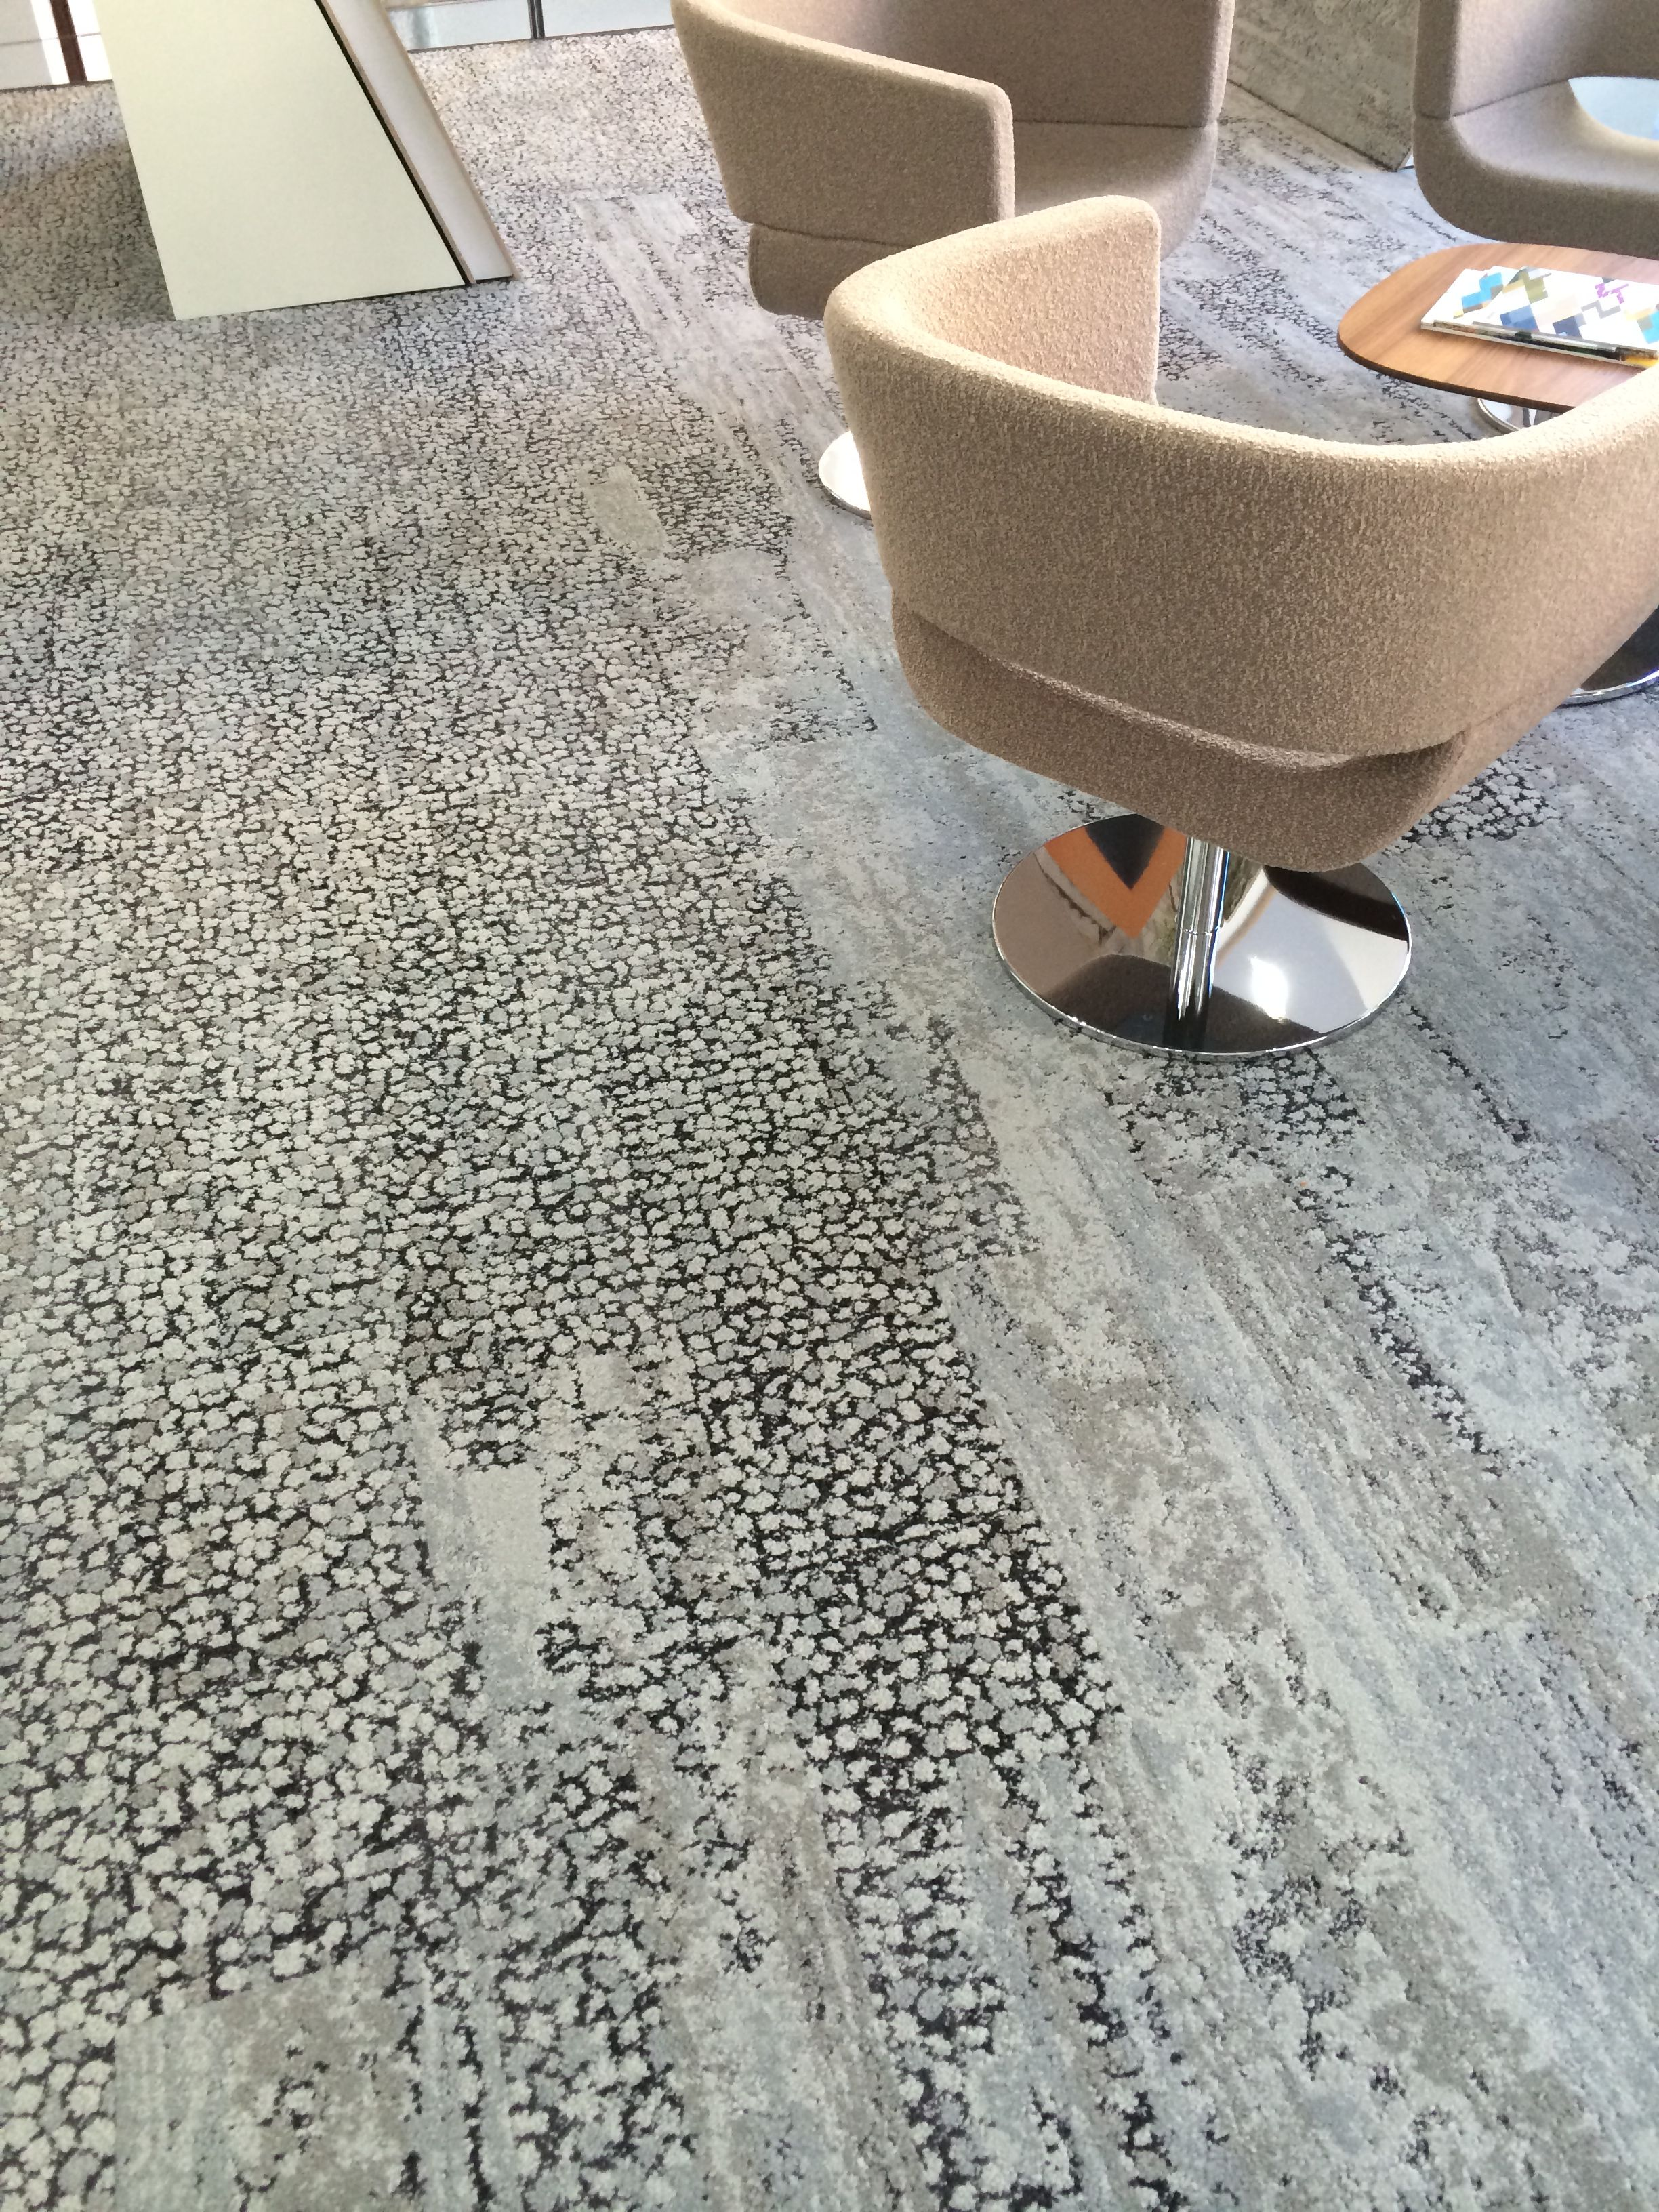 Carpet tile planks human nature by interfacecommerical office carpet tile planks human nature by interfacecommerical office ideas office design doublecrazyfo Choice Image